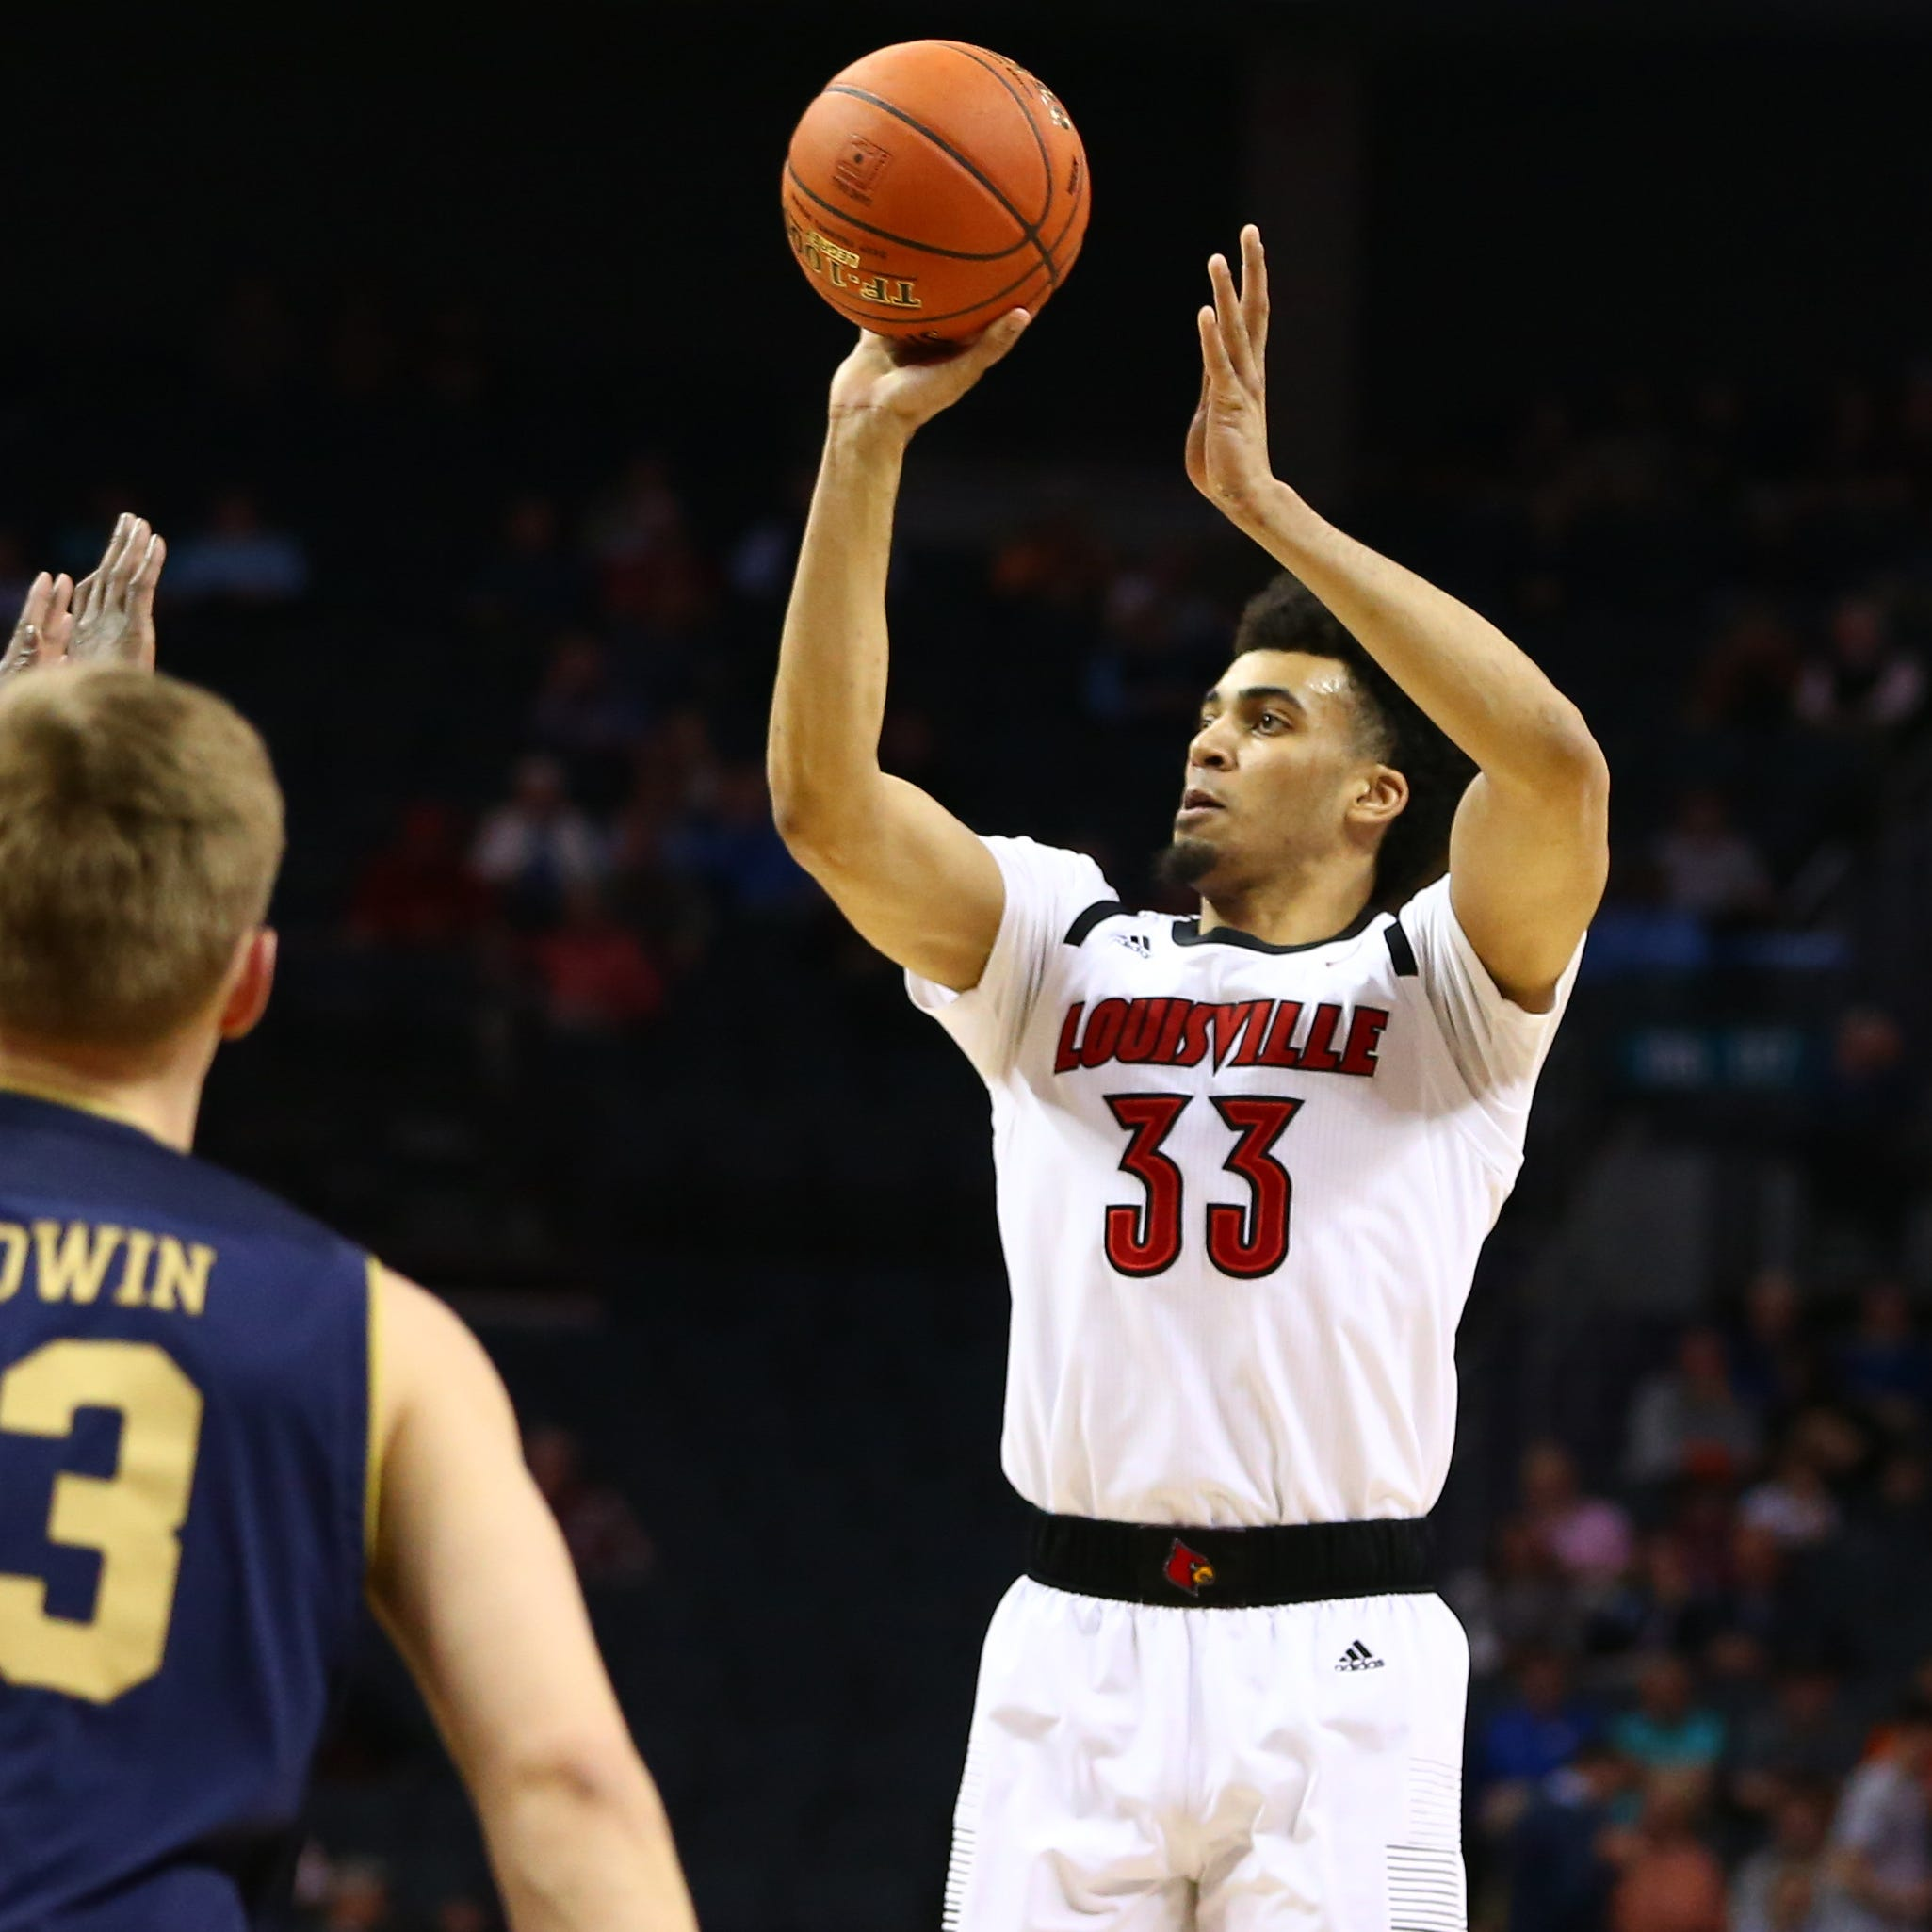 Louisville forward Jordan Nwora scores invite to NBA Draft Combine